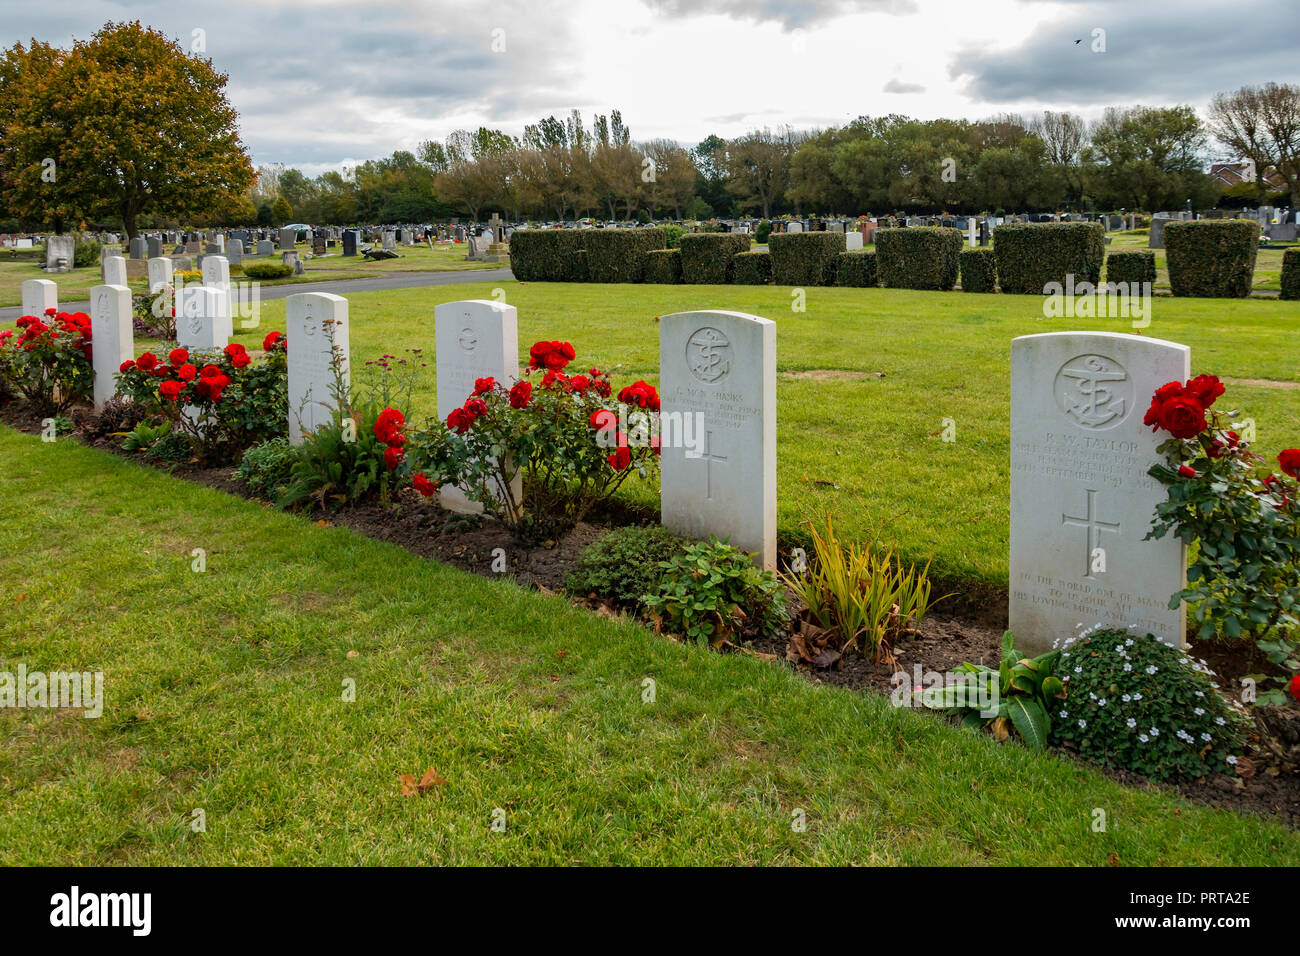 A fine show of red roses along a row of  war graves of servicemen and merchant mariners killed in World War 2 and buried in Acklam cemetary Middlesbro Stock Photo